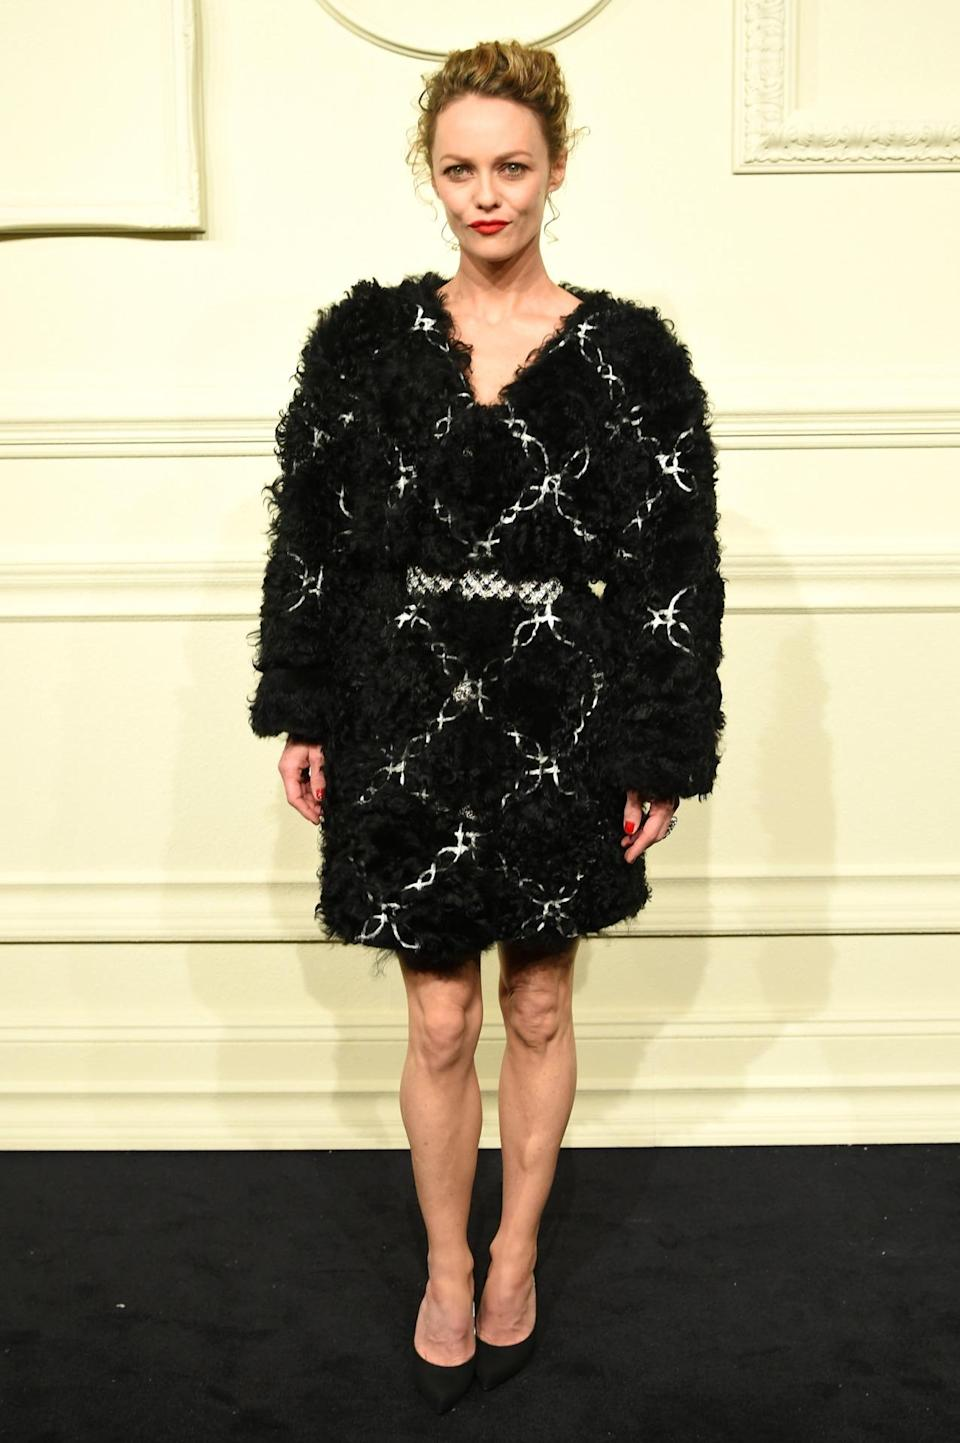 """<p>Vanessa Paradis attends the CHANEL Paris-Salzburg 2014/15 Metiers d'Art Collection</p><p>Vanessa Paradis has been modeling for Chanel since 1991, but Tuesday night marked her family's first fashion outing. She brought daughter Lily-Rose Depp and son Jack to the brand's Paris-Salzburg 2014/15 Metiers d'Art Collection in New York. Of the city, she said, """"<span>I lived here a long time ago and each time I'm back it just fills my heart with sparkles. I love it. It's really awesome."""" </span></p>"""